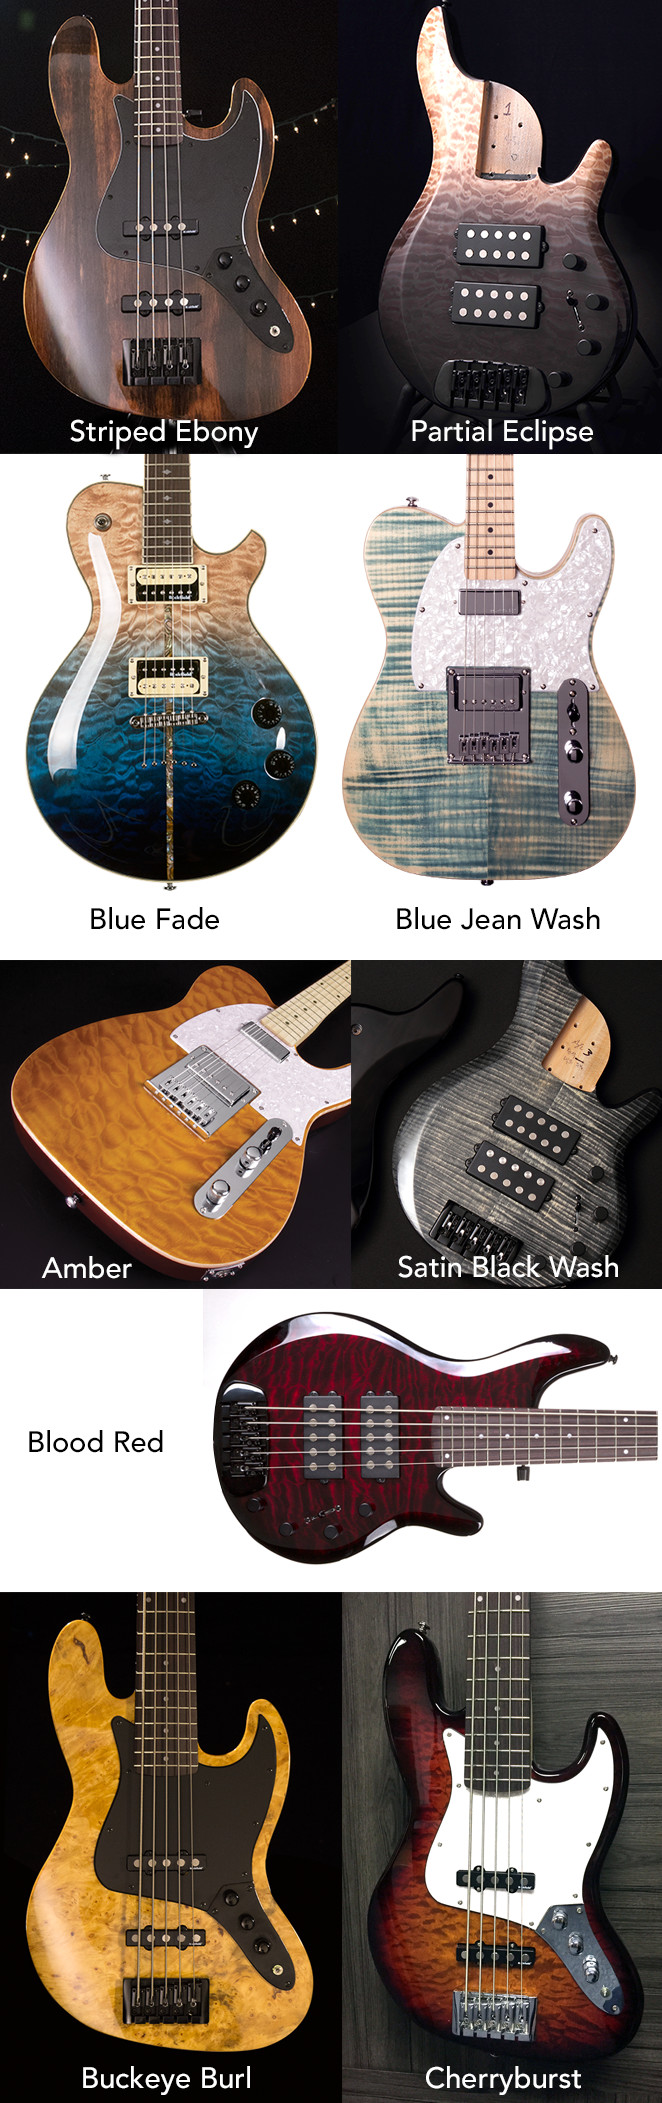 bass_body_colors